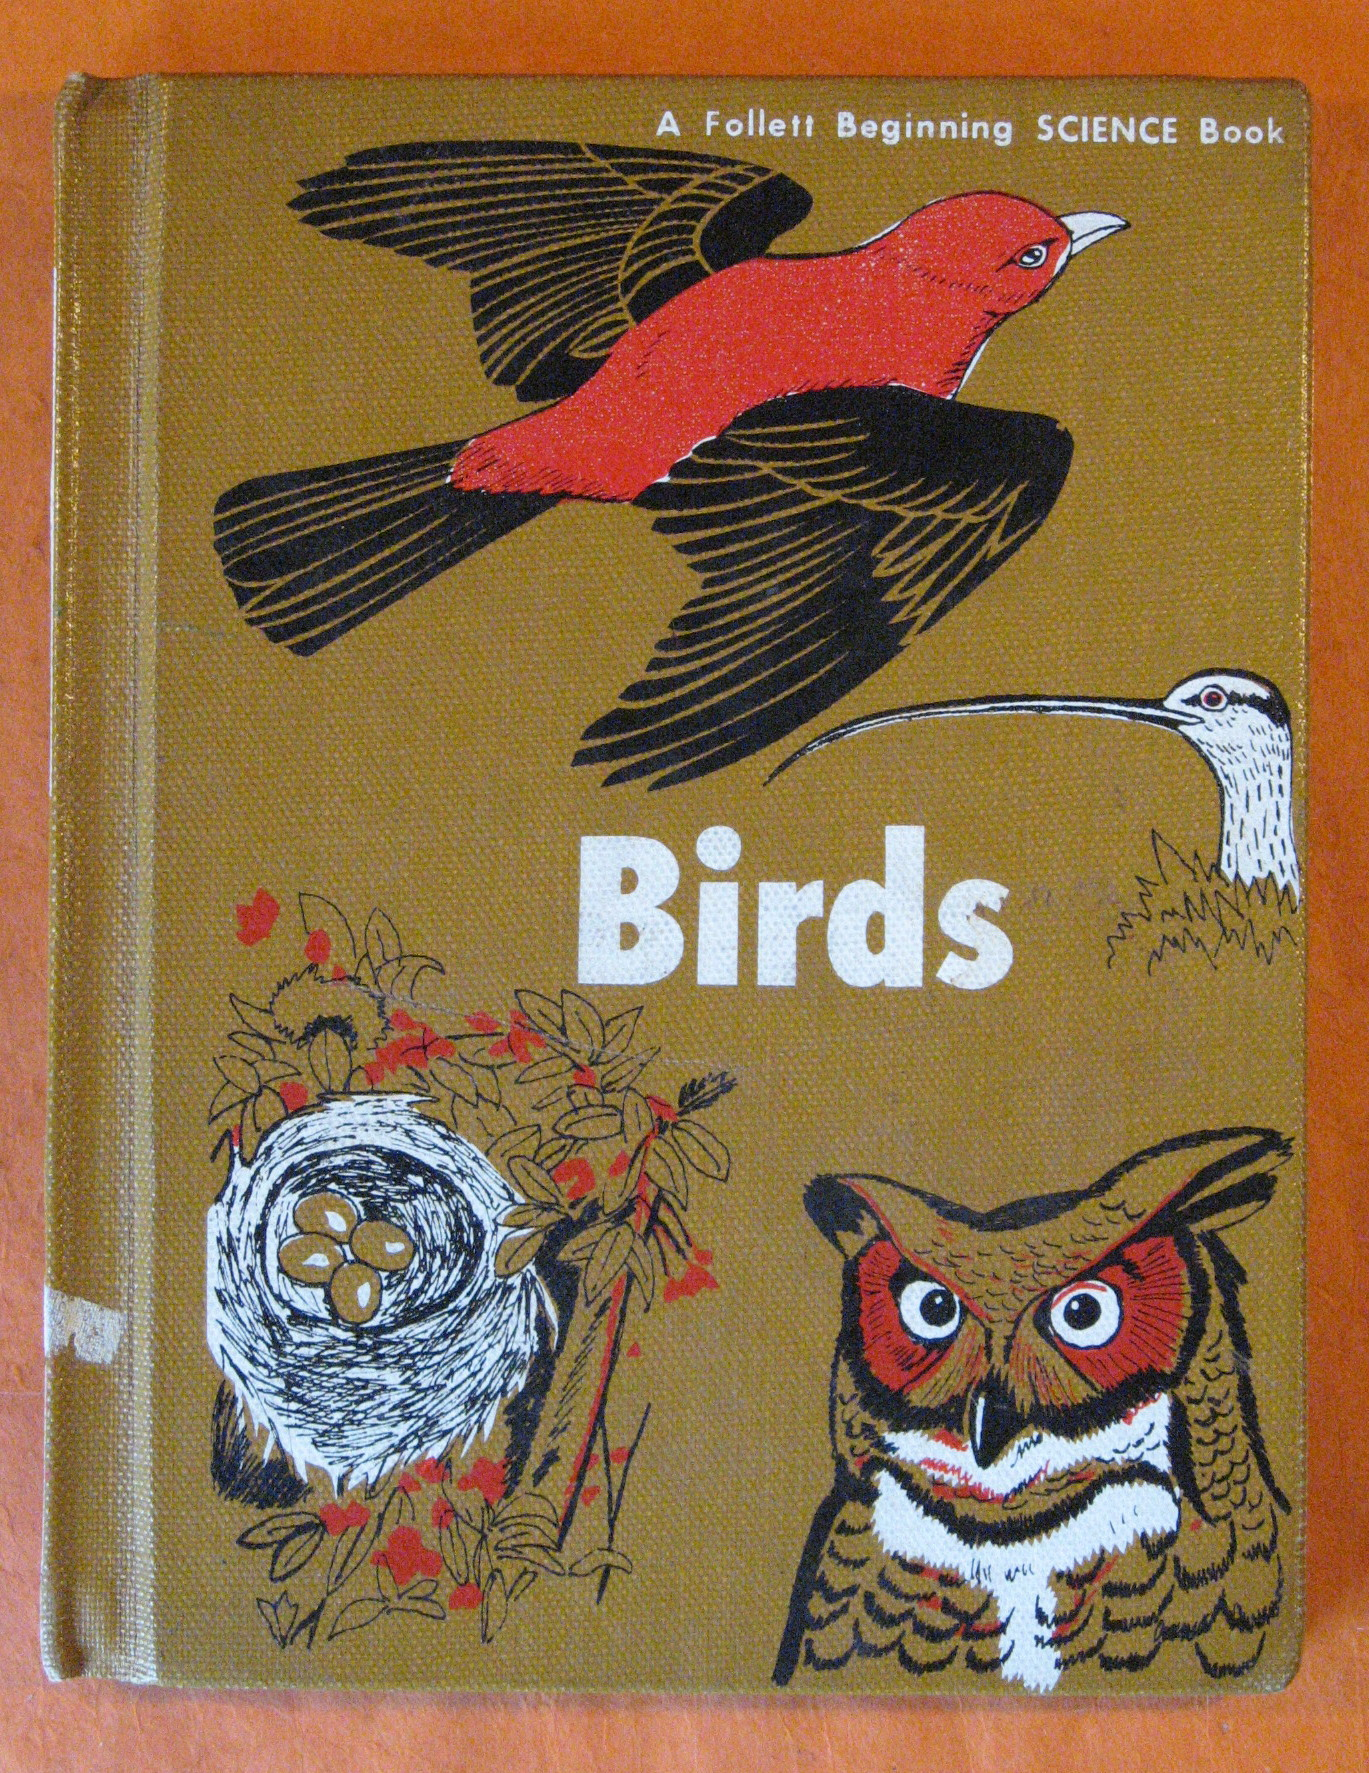 Birds (A Follett Beginning Science Book), Wasson, Isabel B.